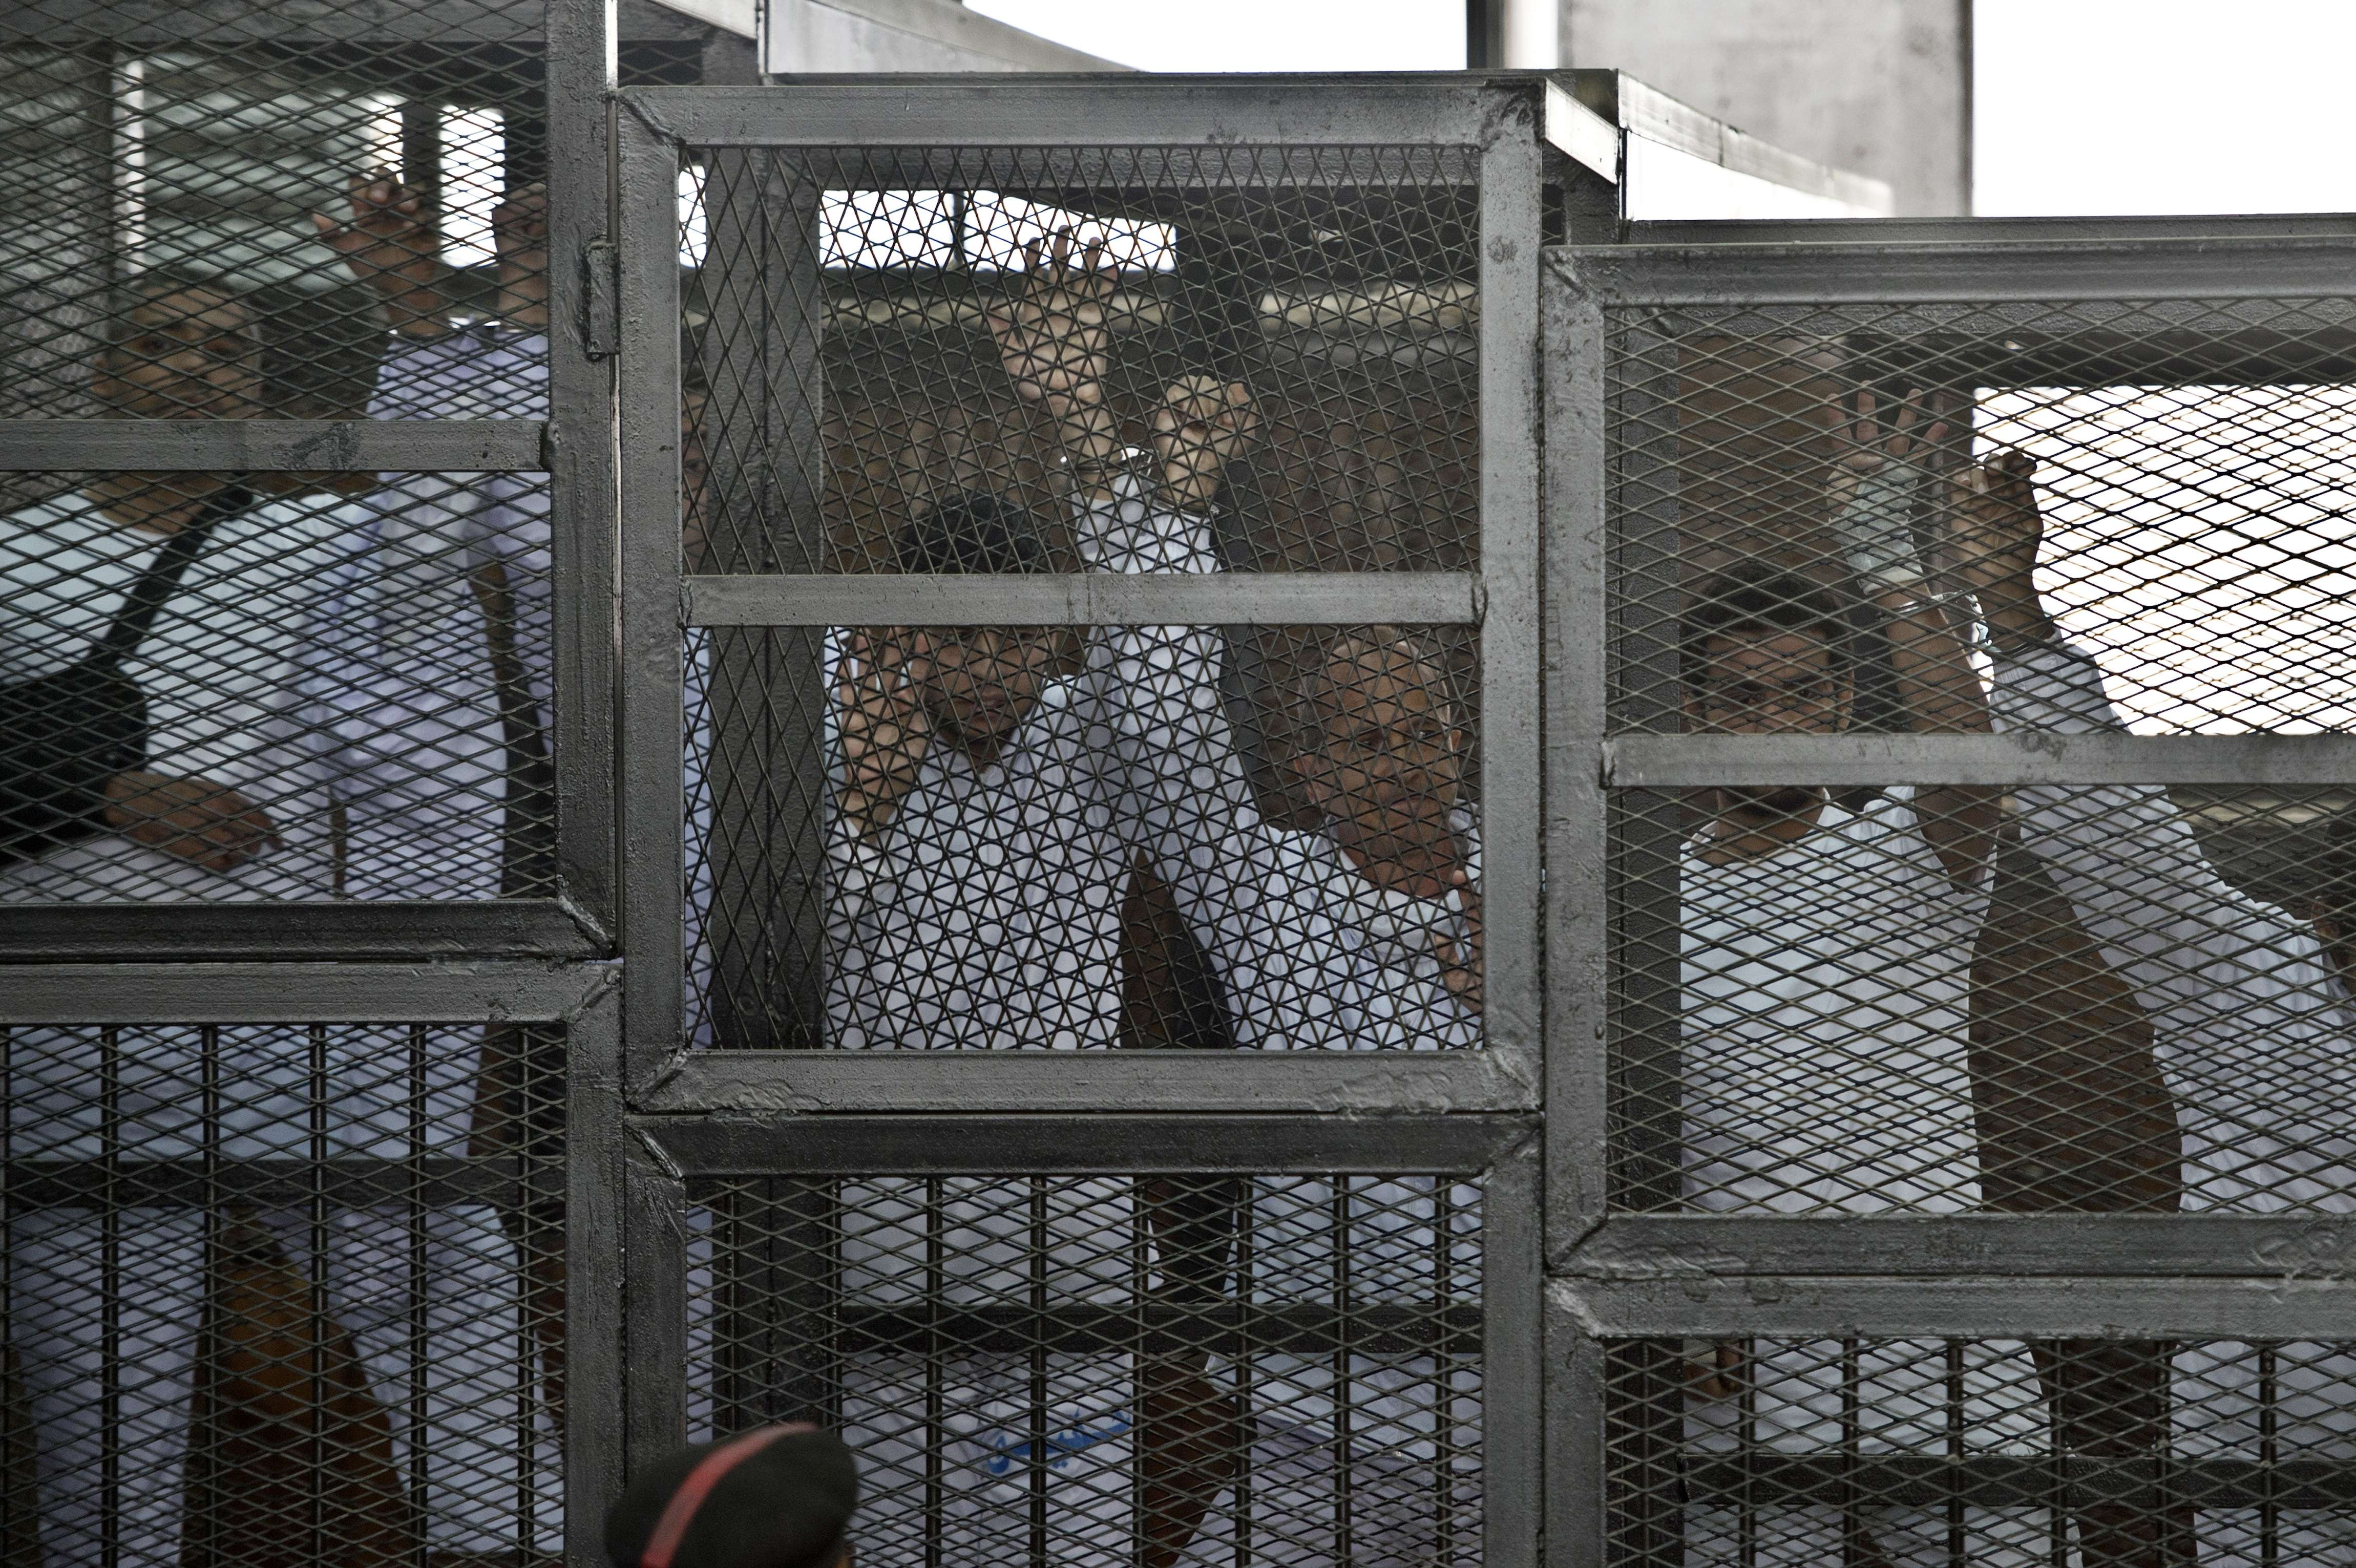 Australian journalist Peter Greste (C) of Al-Jazeera and his colleagues stand inside the defendants cage during their trial for allegedly supporting the Muslim Brotherhood at Cairo's Tora prison on March 5, 2014.  (AFP PHOTO / KHALED DESOUKI)